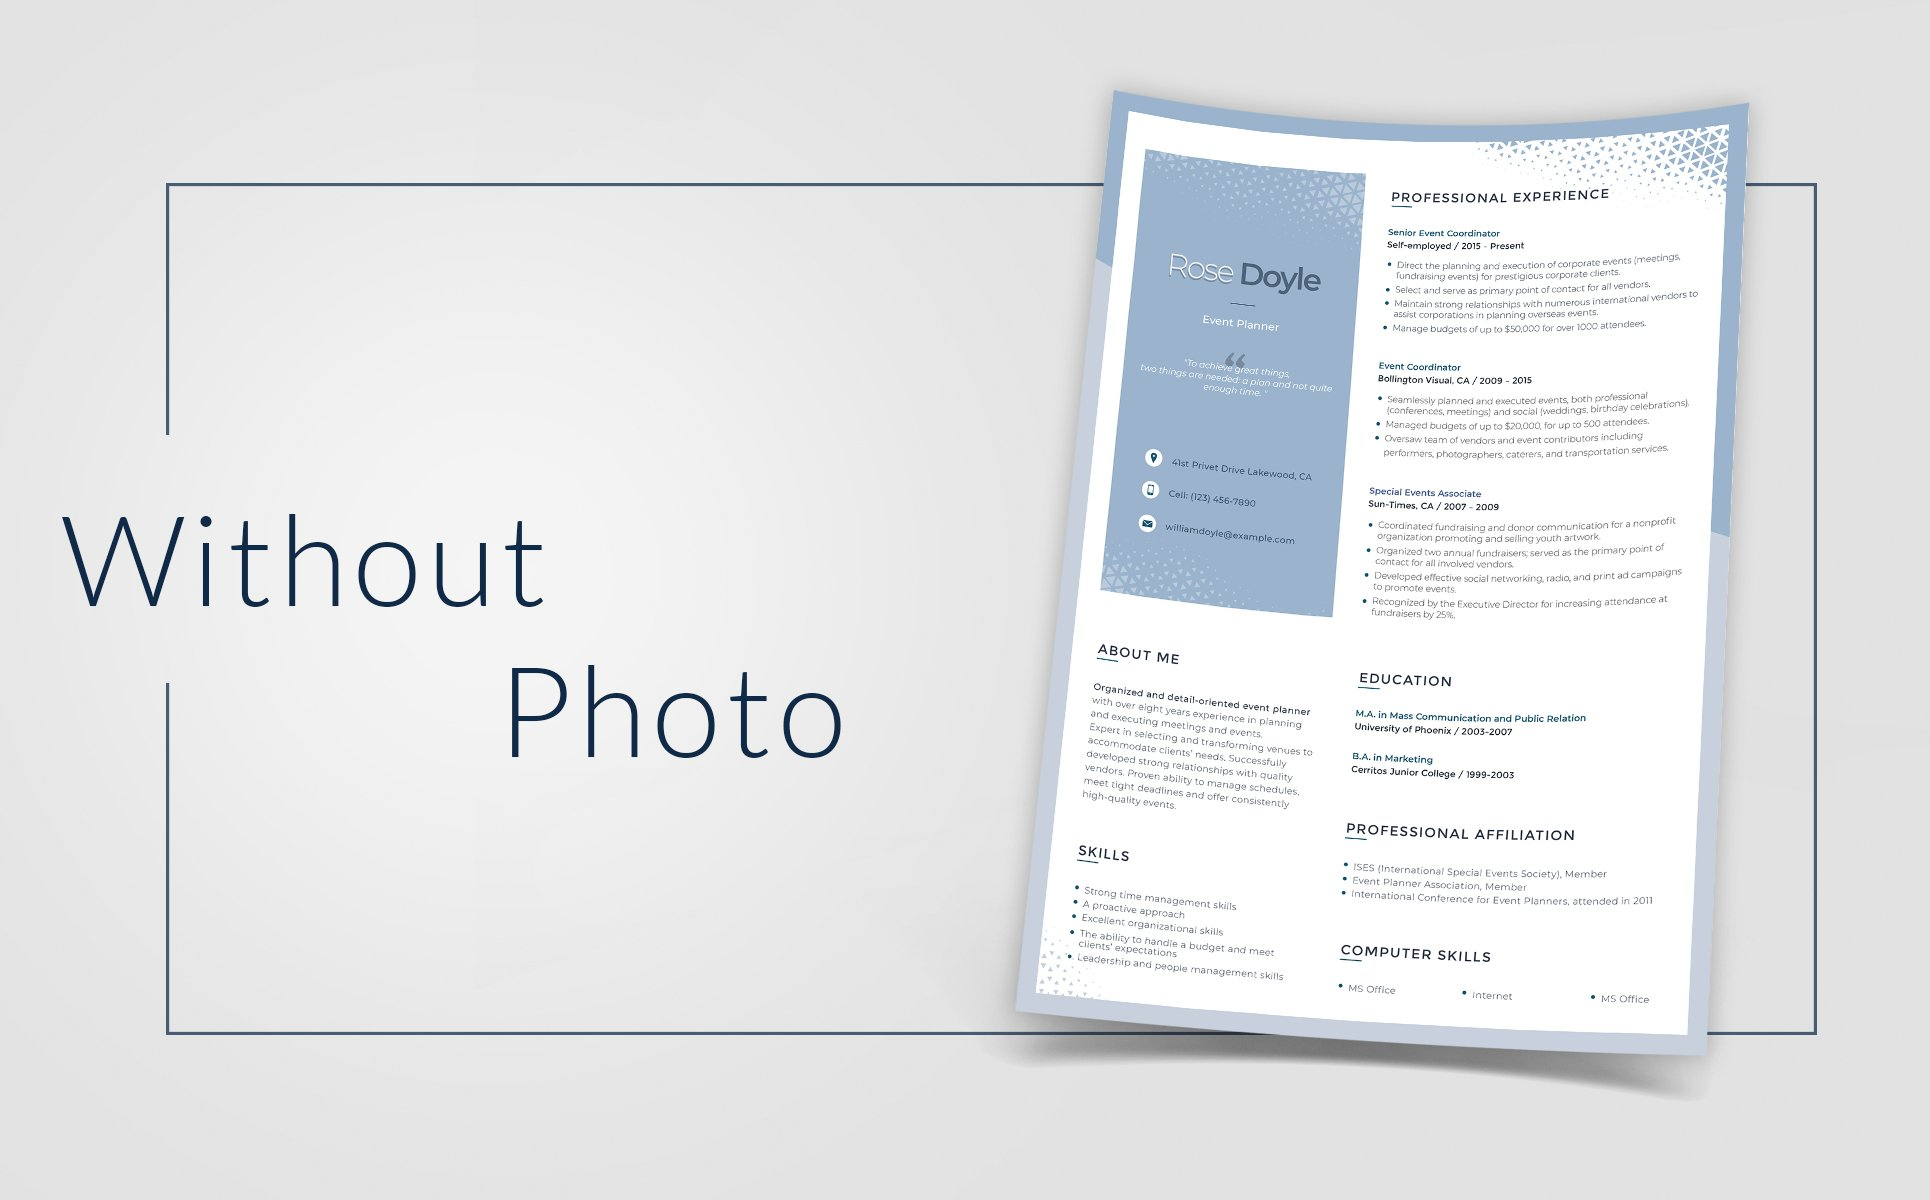 Rose Doyle Event Manager Resume Template 66440